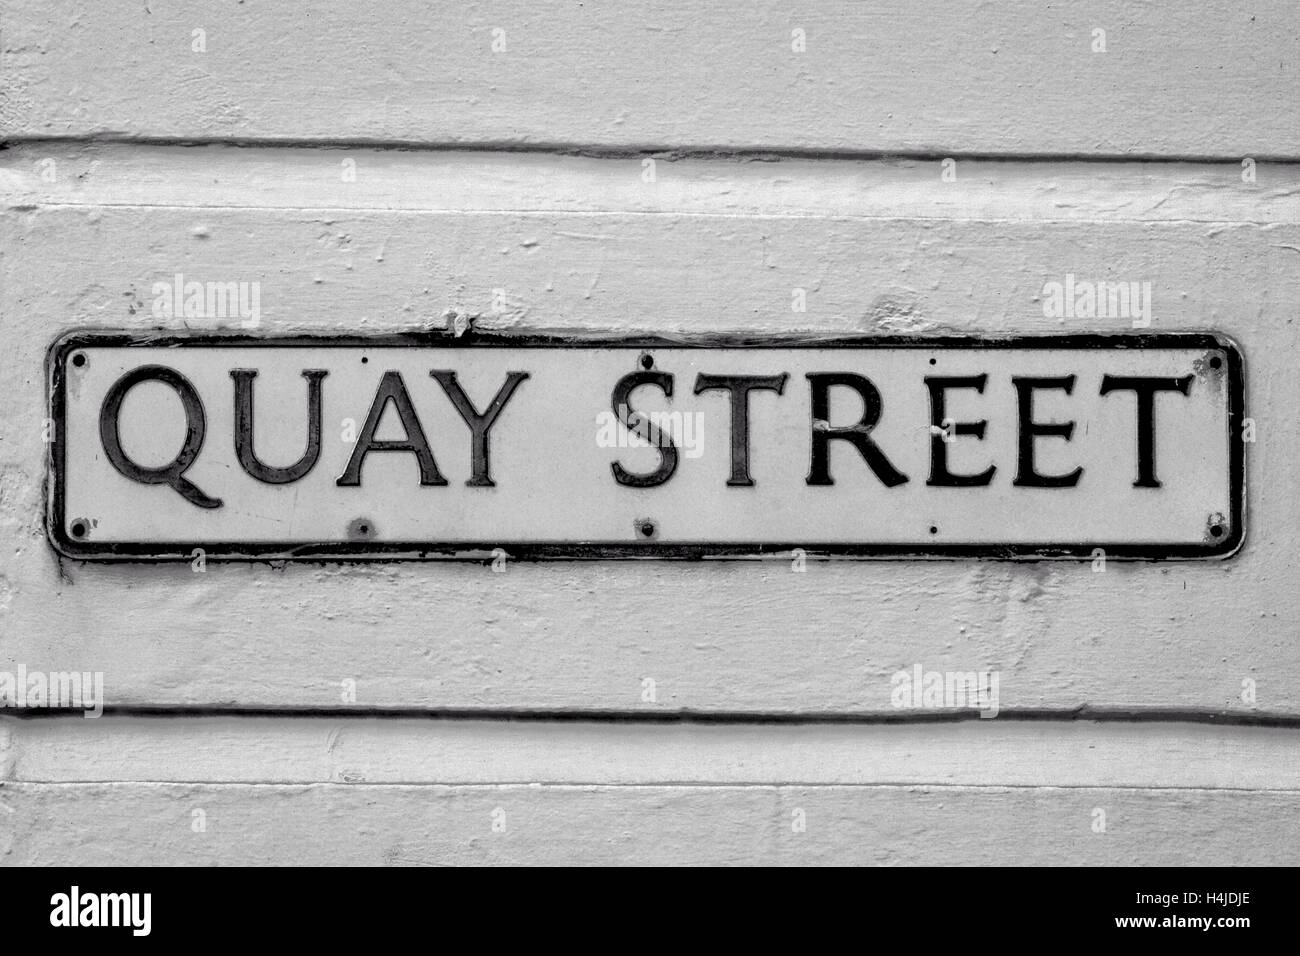 Manchester City street names and signs, Greater Manchester, UK - Stock Image